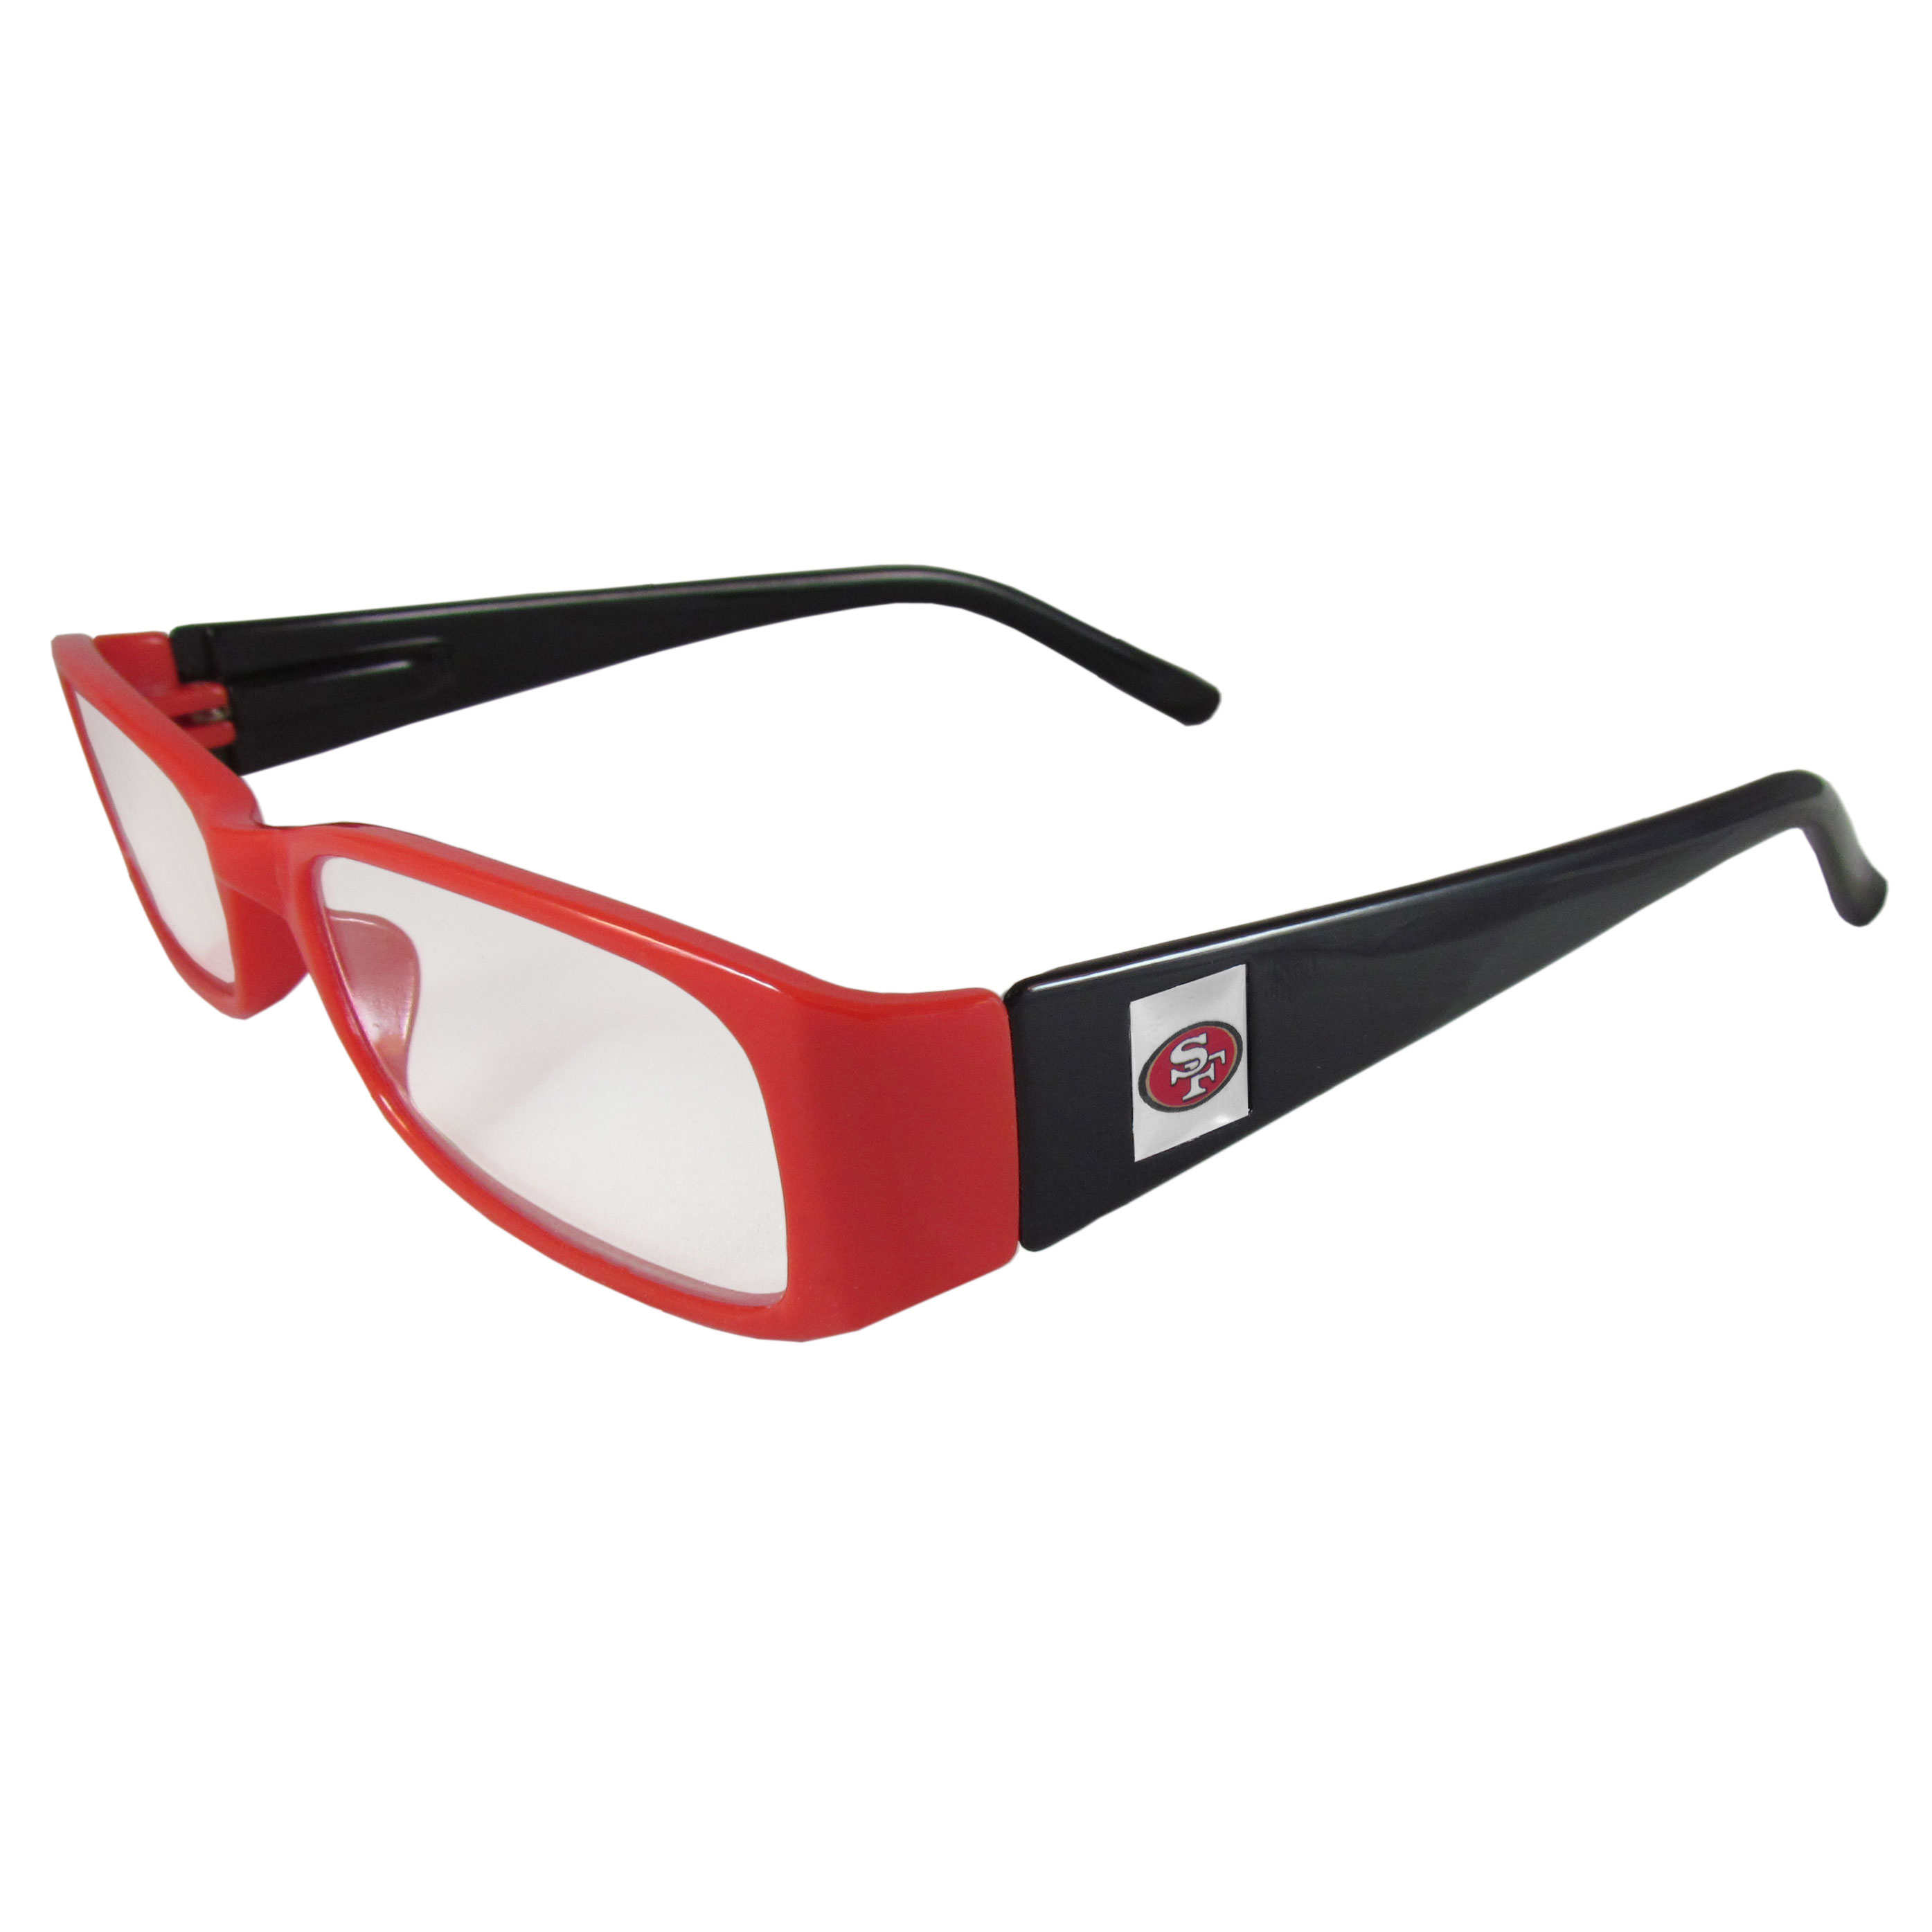 San Francisco 49ers Reading Glasses +1.25 - Our San Francisco 49ers reading glasses are 5.25 inches wide and feature the team logo on each arm. Magnification Power 1.25